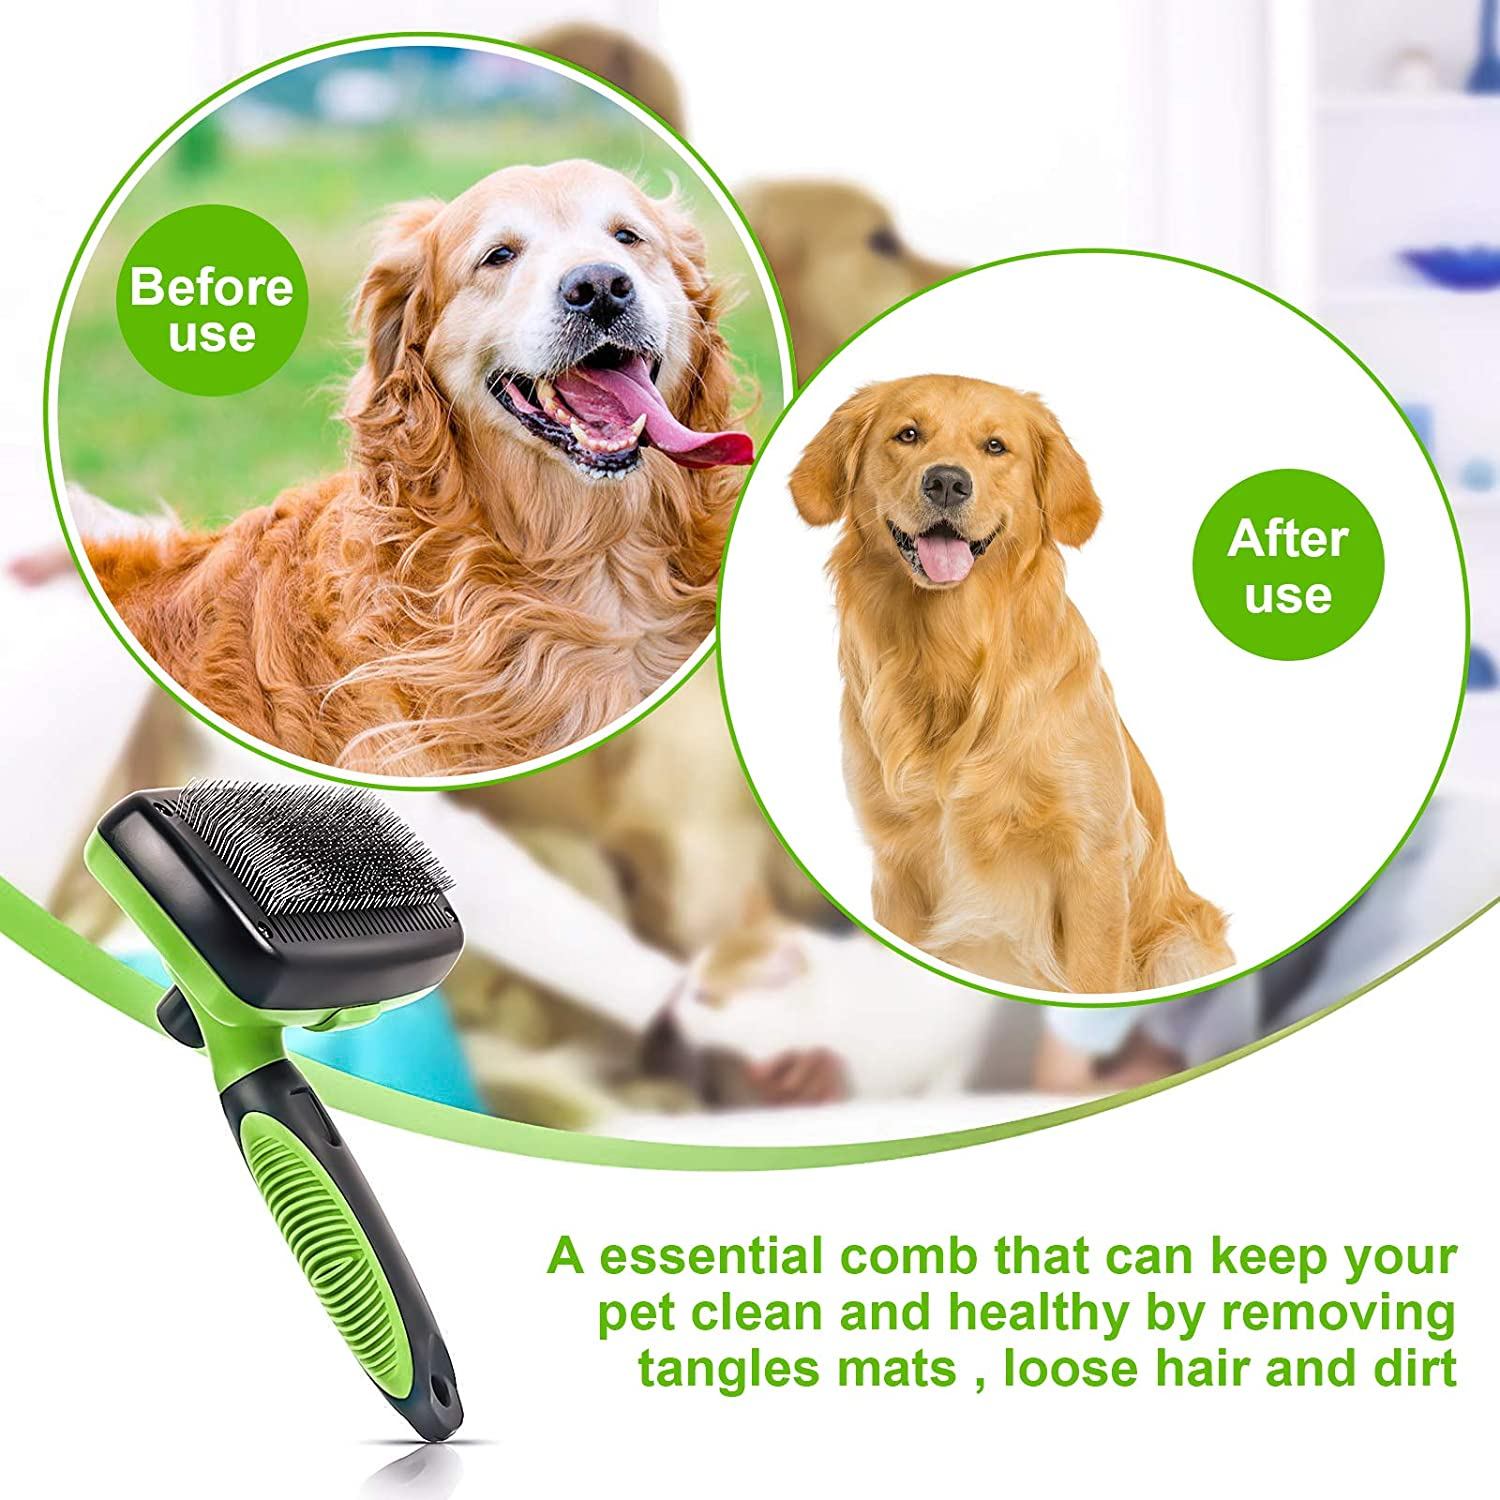 Pecute Slicker Dog Brushes,Self Cleaning Pet Grooming Brush Removes 90/% of Dead Undercoat and Loose Hairs,Suitable for Medium and Long Haired Dogs Cats,With pet grooming gloves